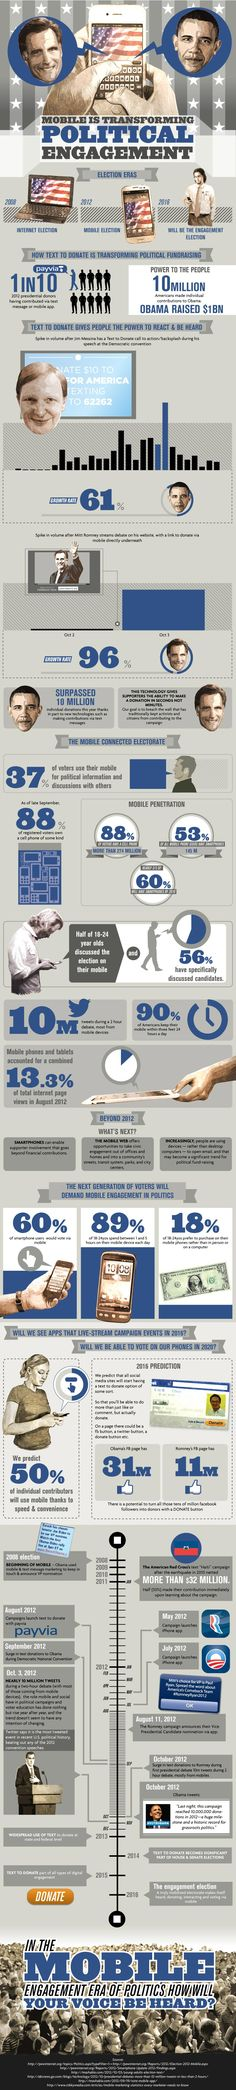 Mobile is transforming political engagement #infographic